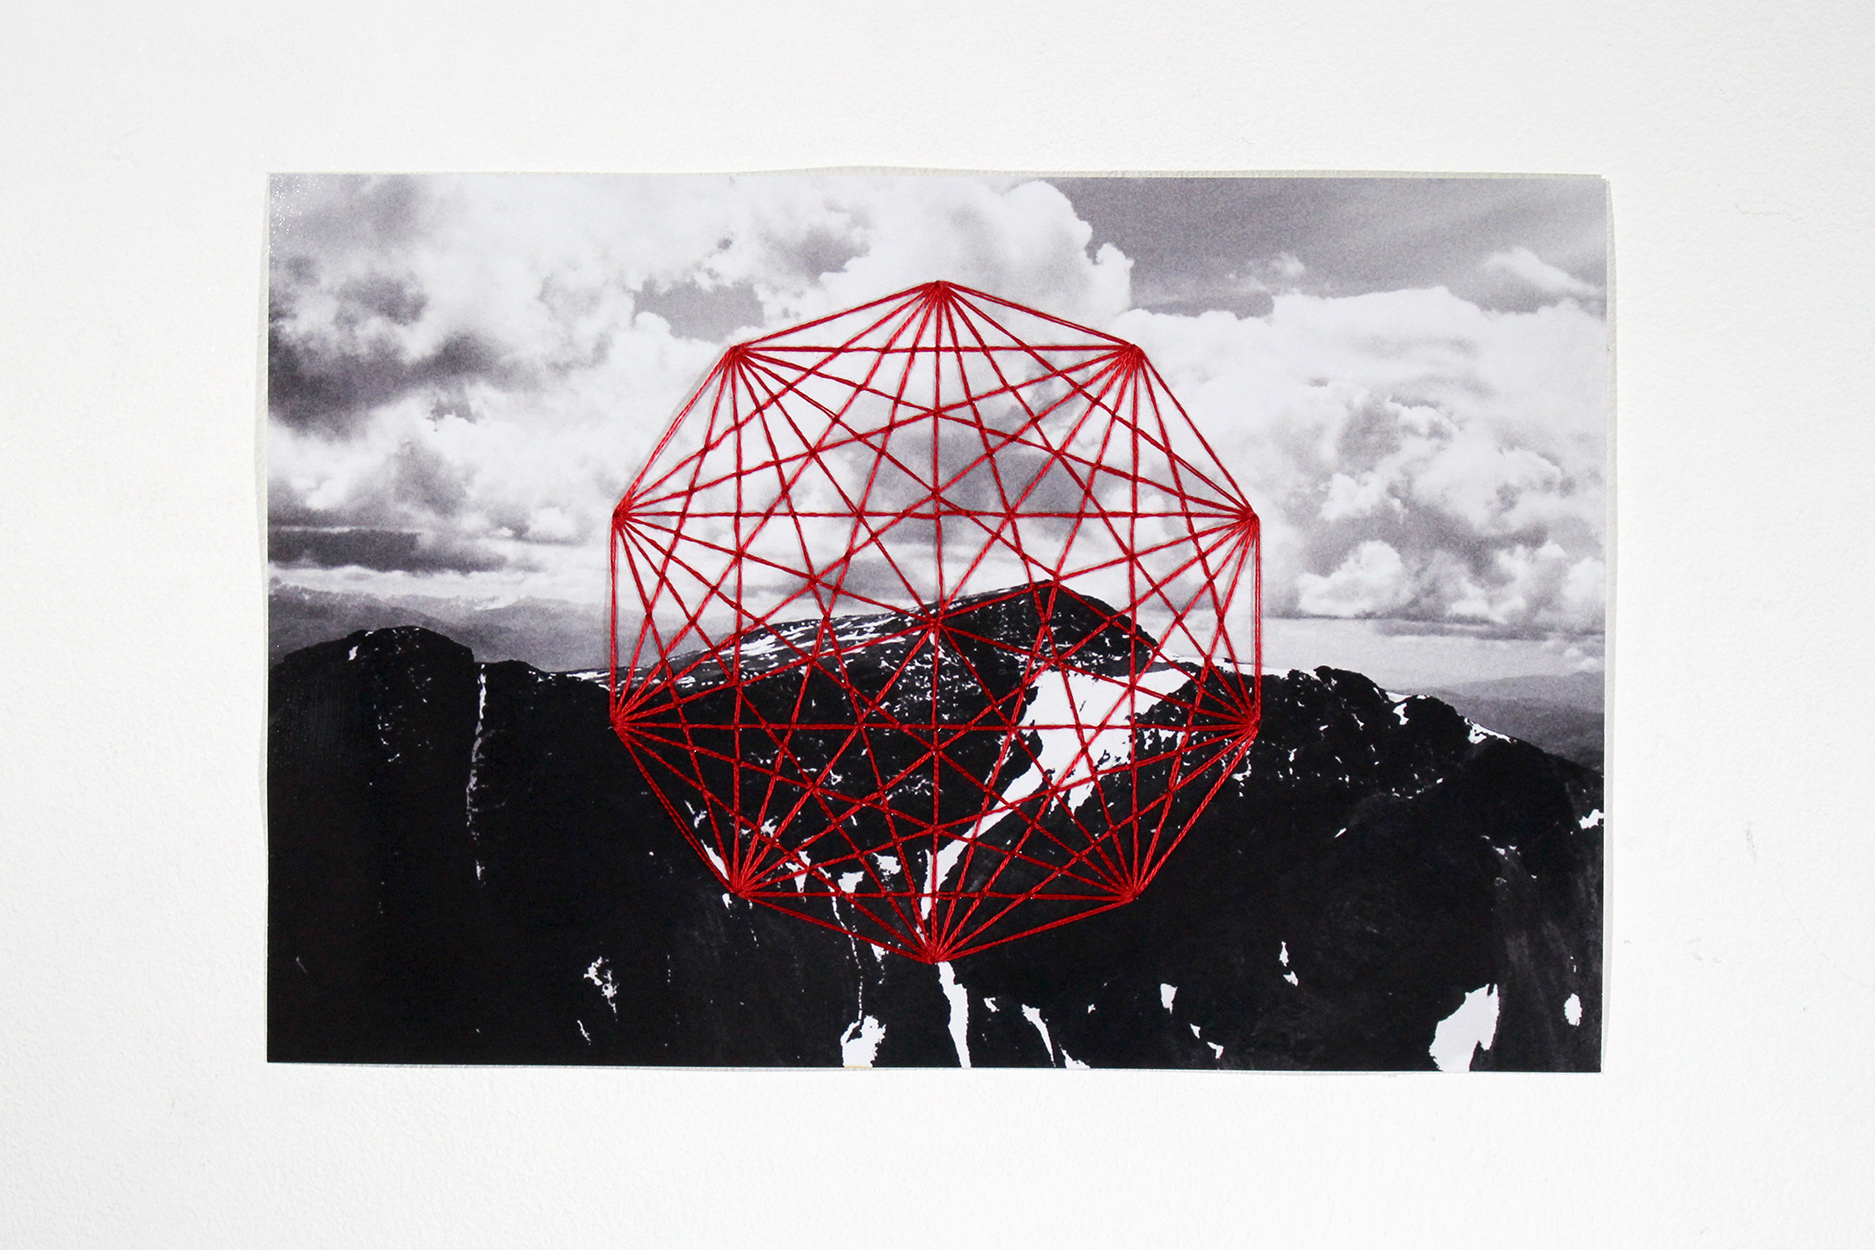 Hand Embroidered Black & White Photographs (Sgorr Ruadh)